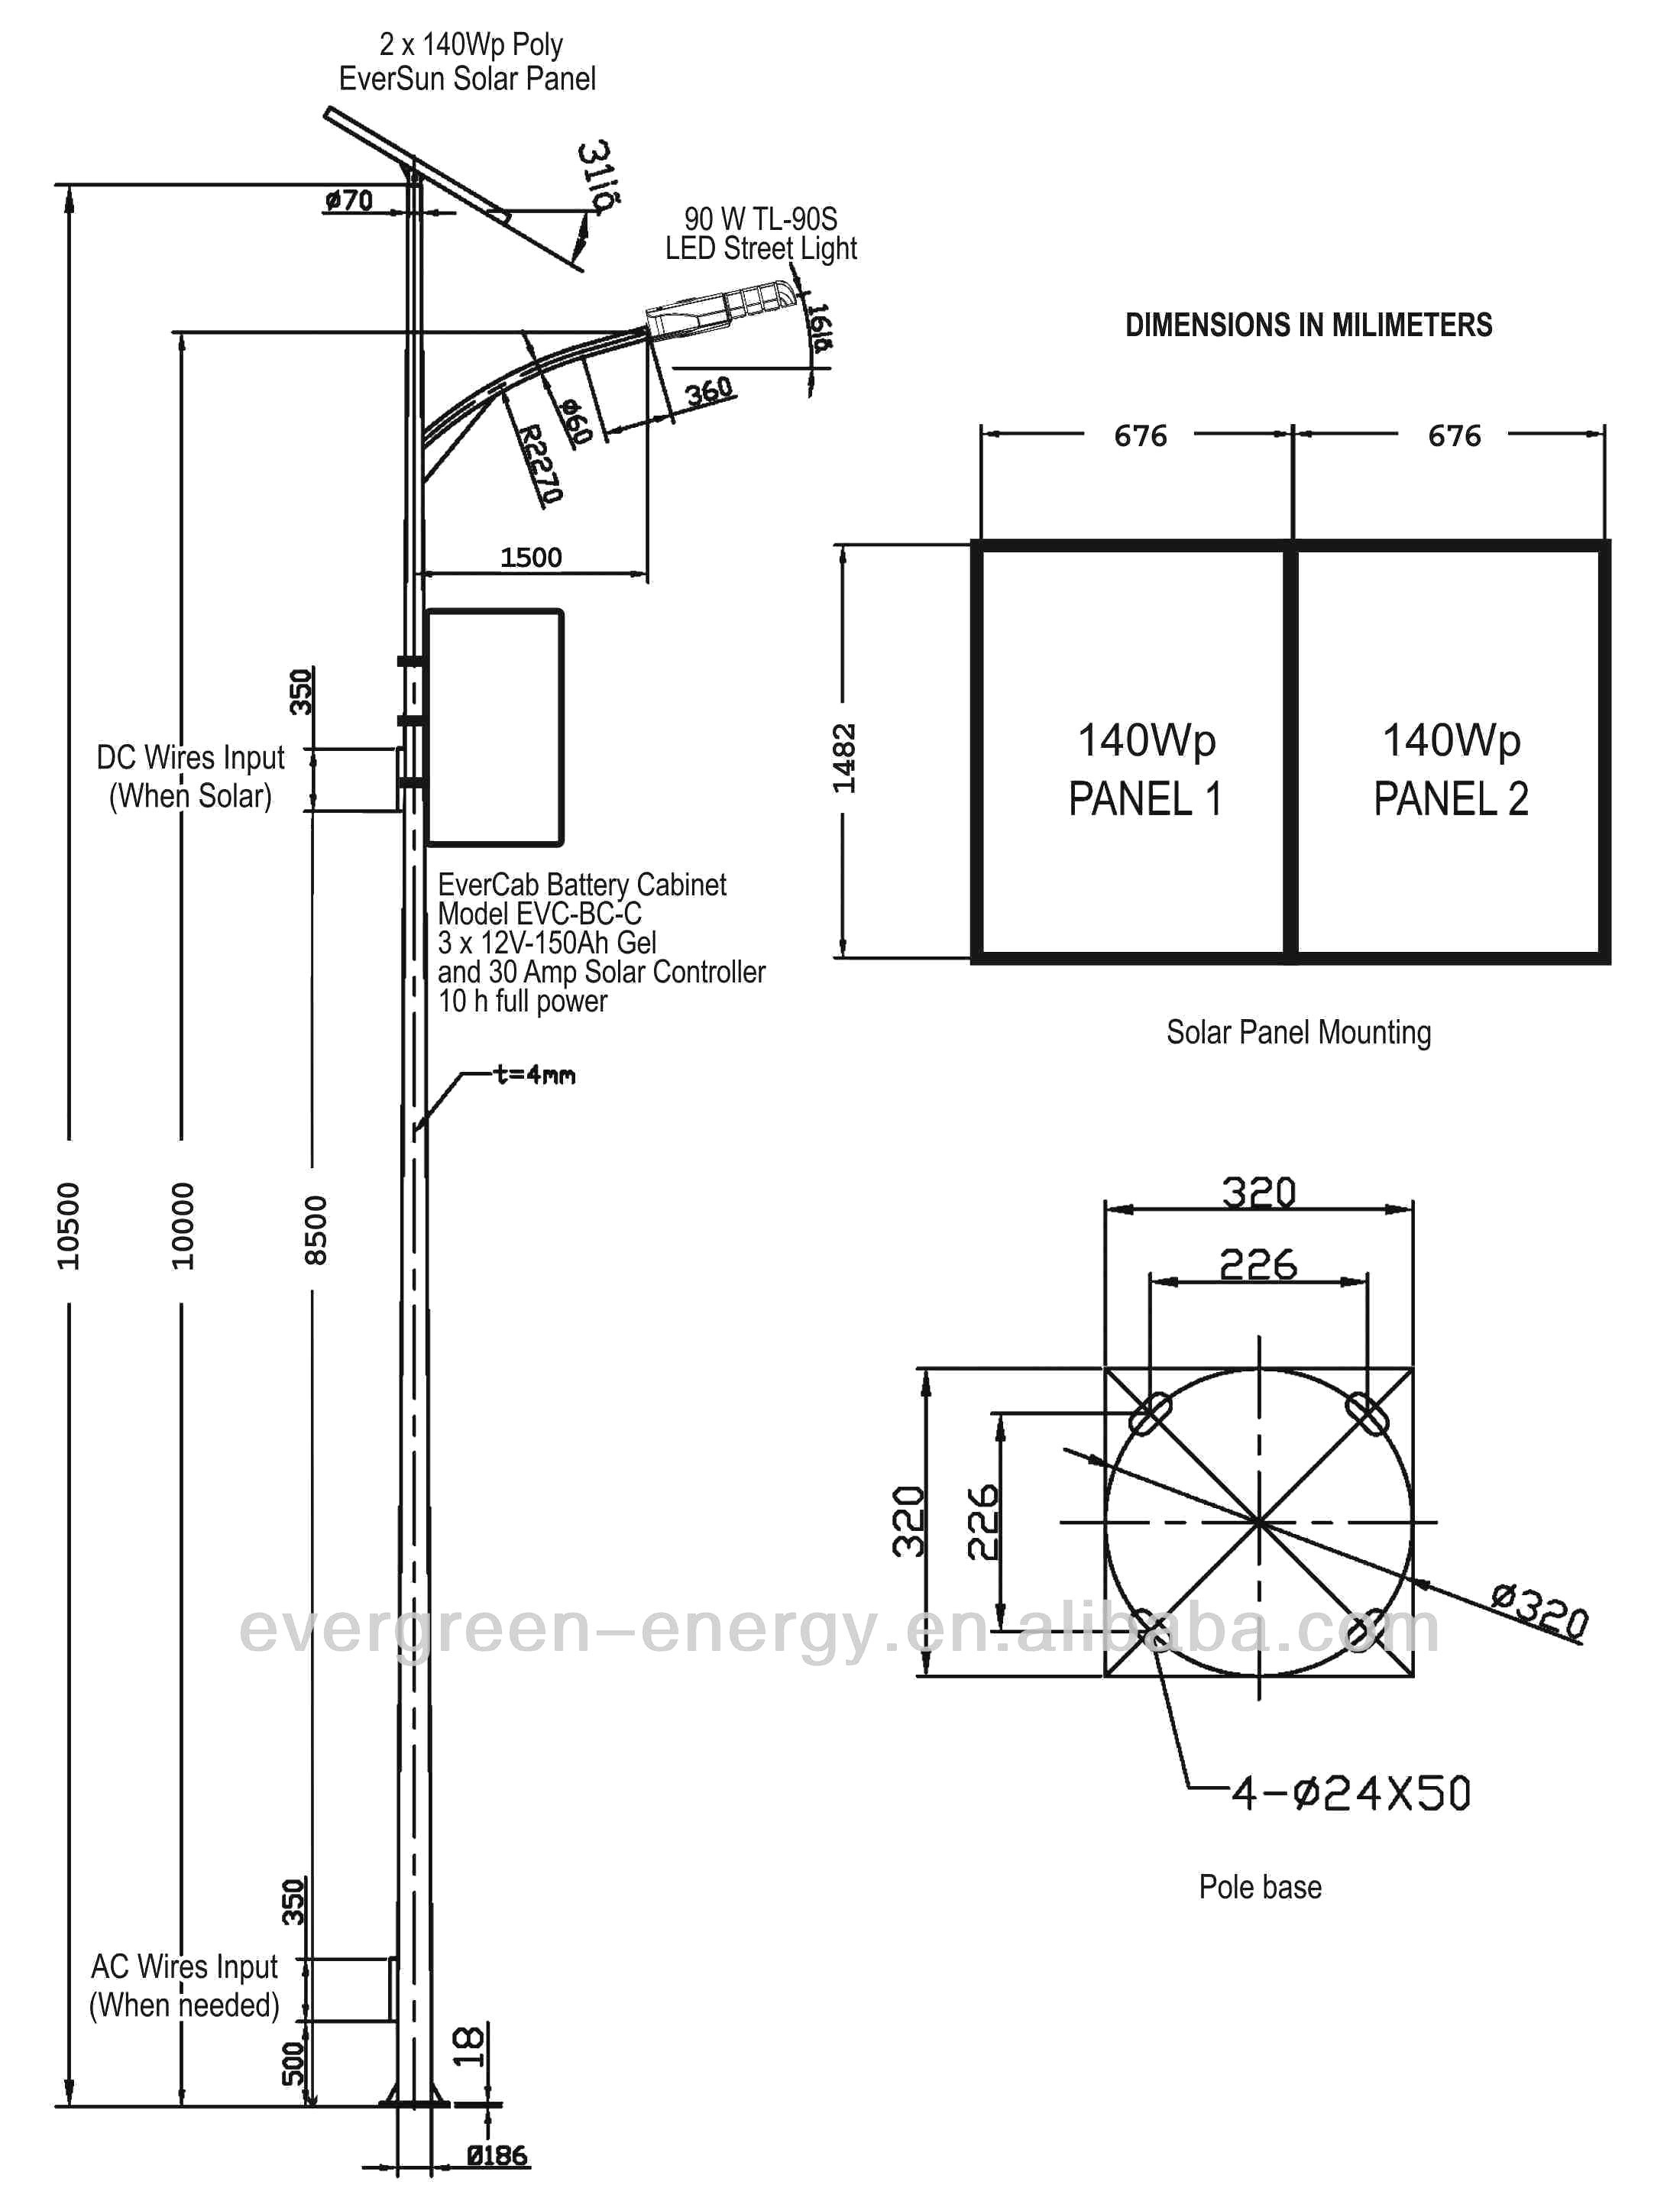 Wiring System For Lighting